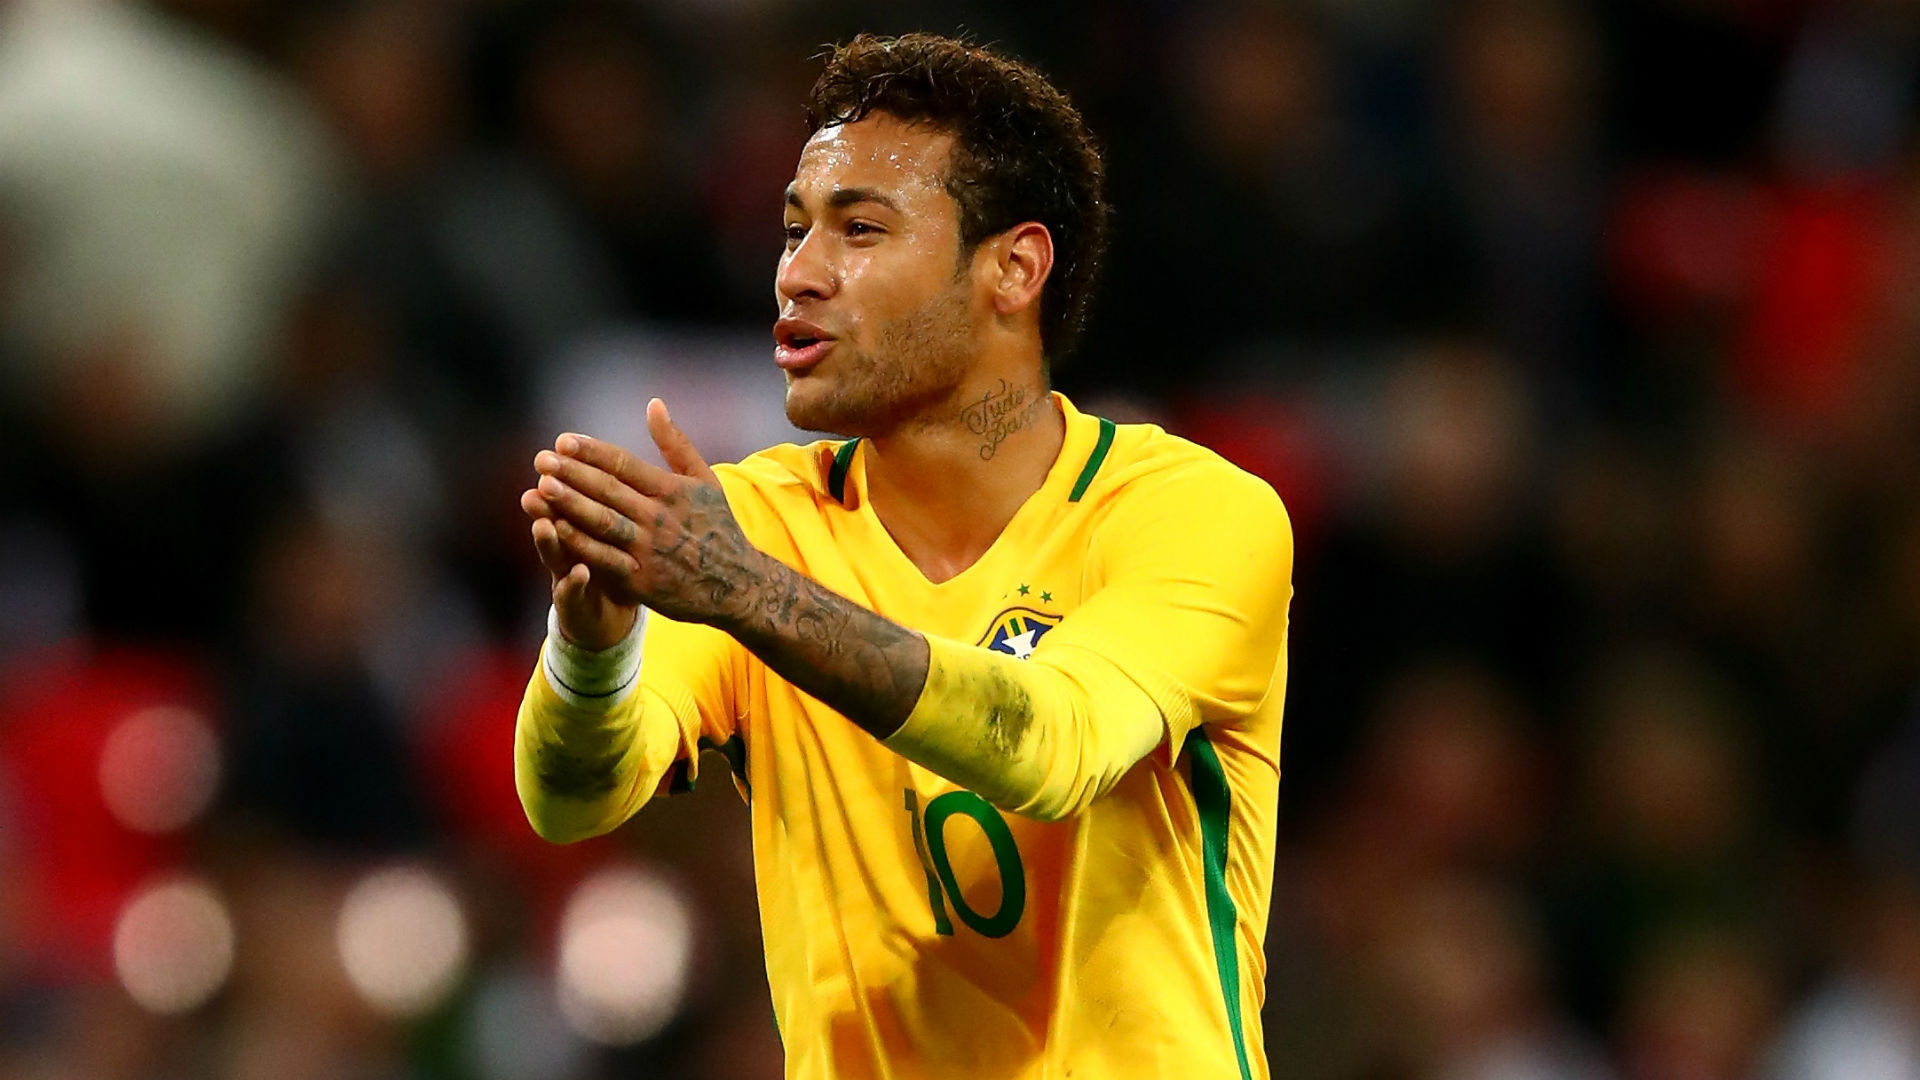 Neymar admits to 'fear' as he chases World Cup dream